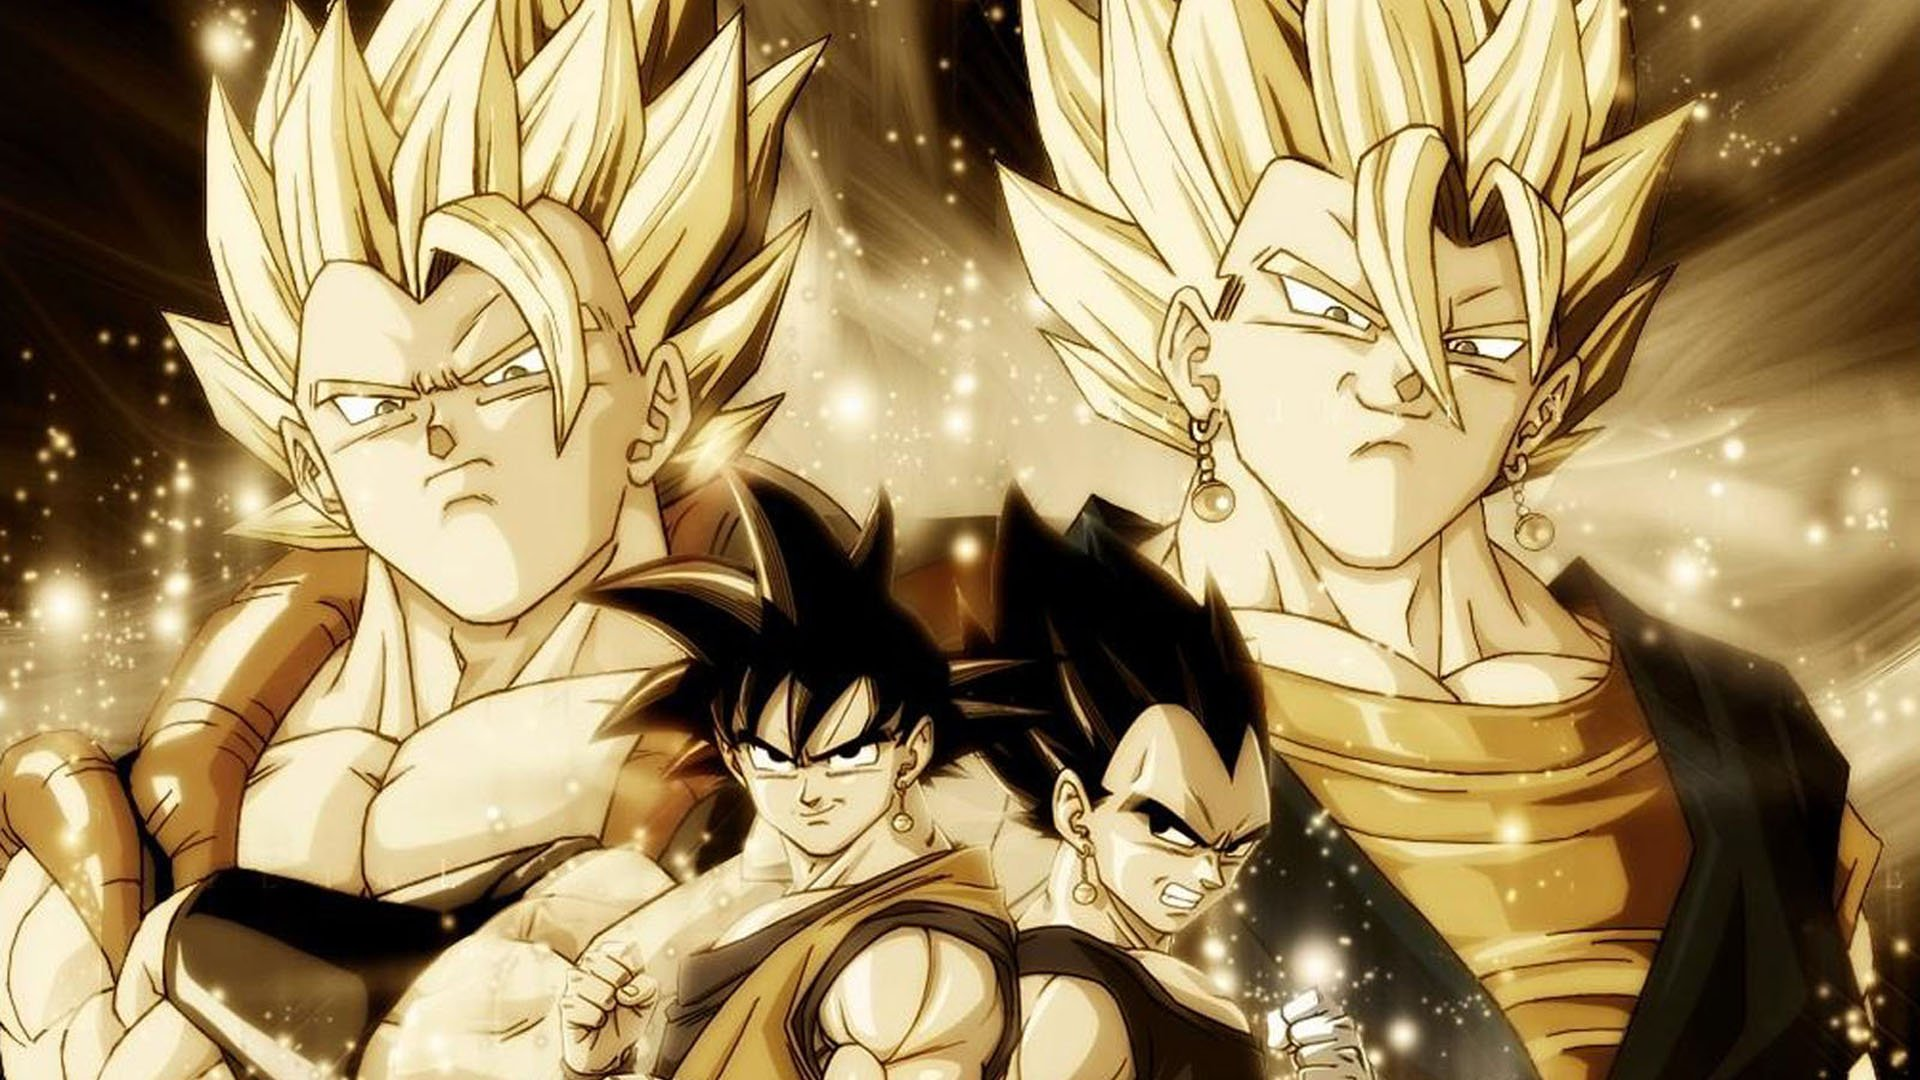 Wallpapers De Dragon Ball En HD 1920x1080 Taringa